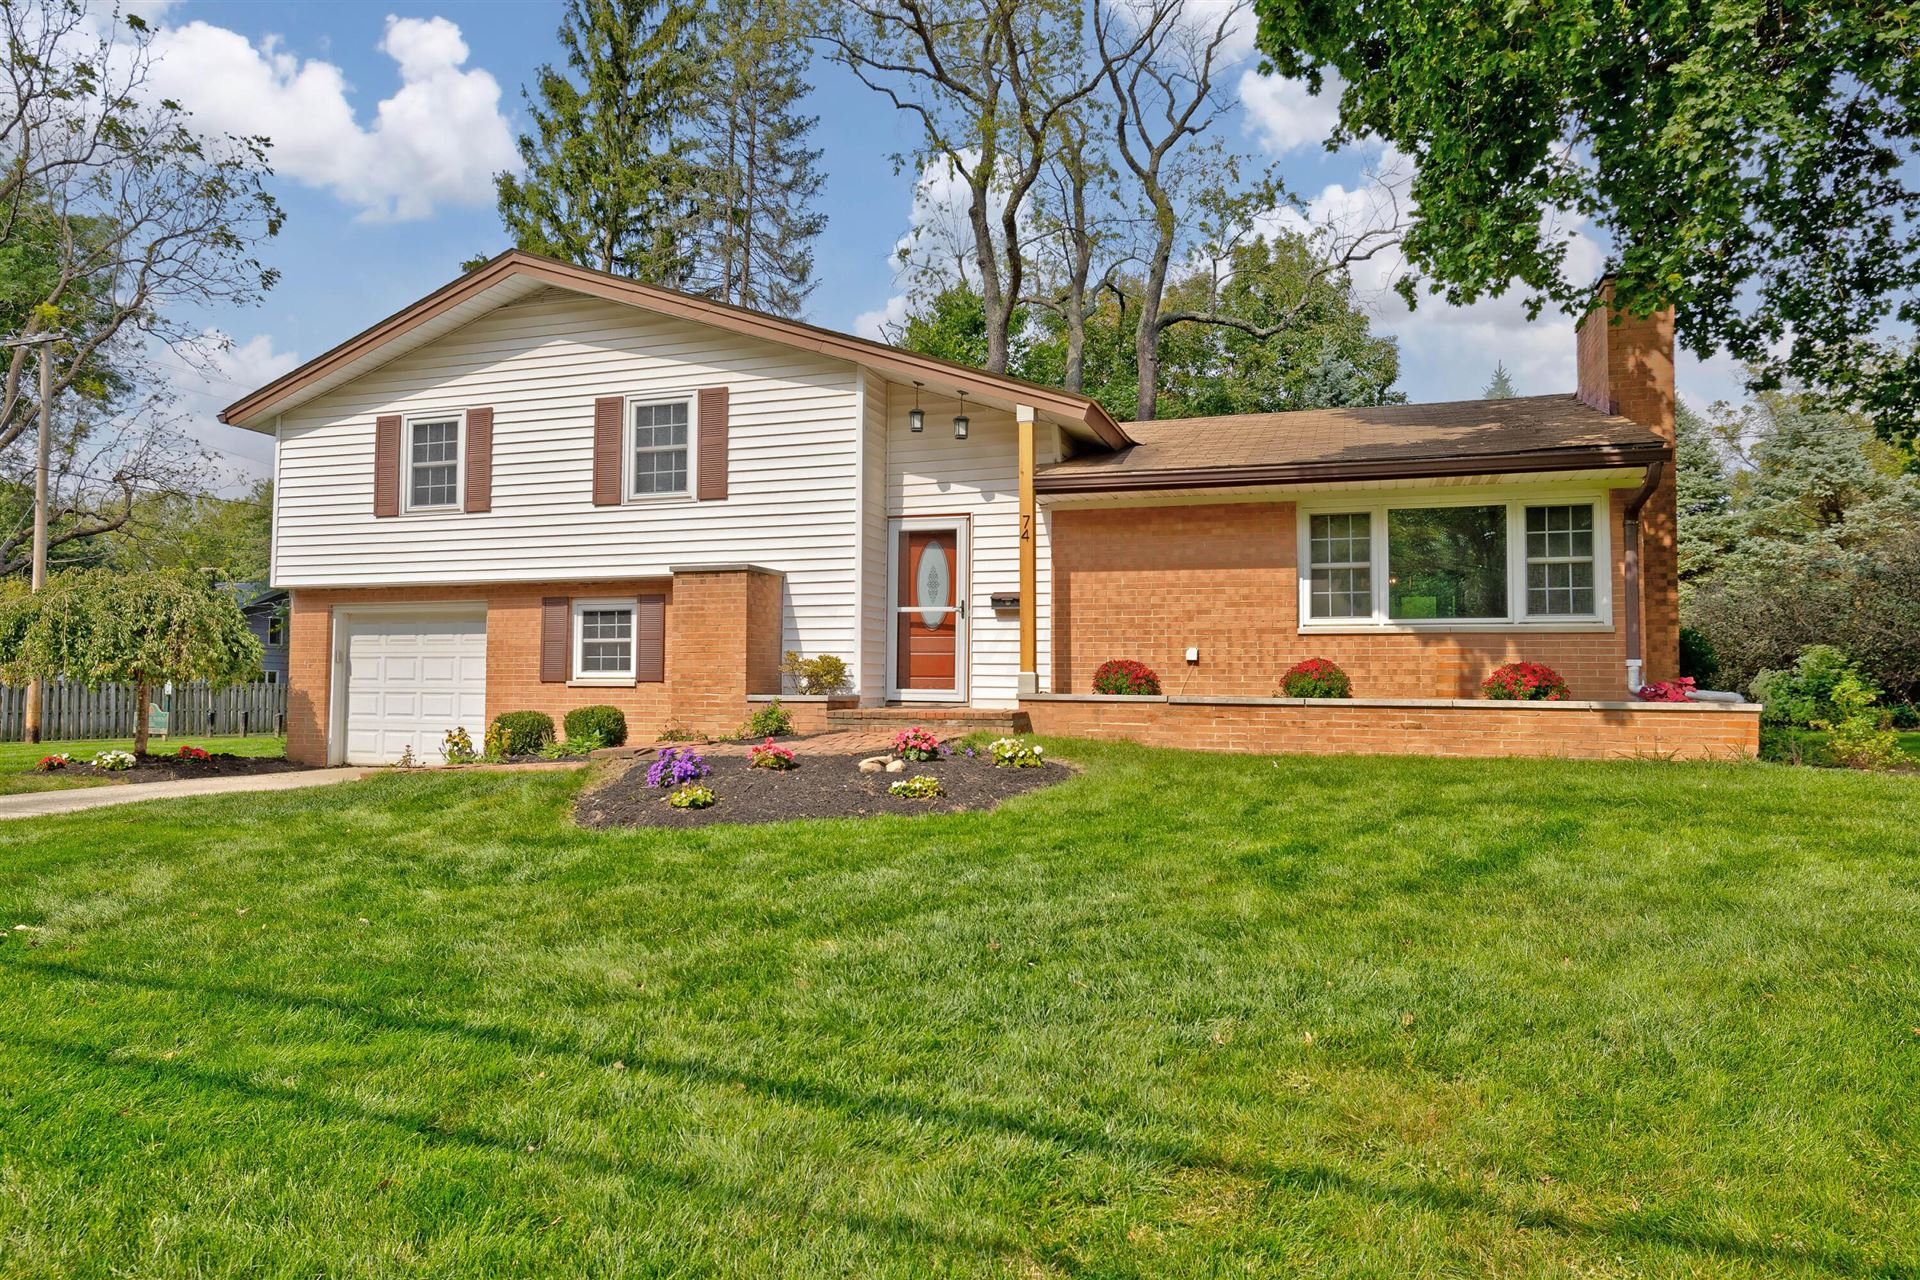 Photo of 74 Bishop Drive, Westerville, OH 43081 (MLS # 221036234)